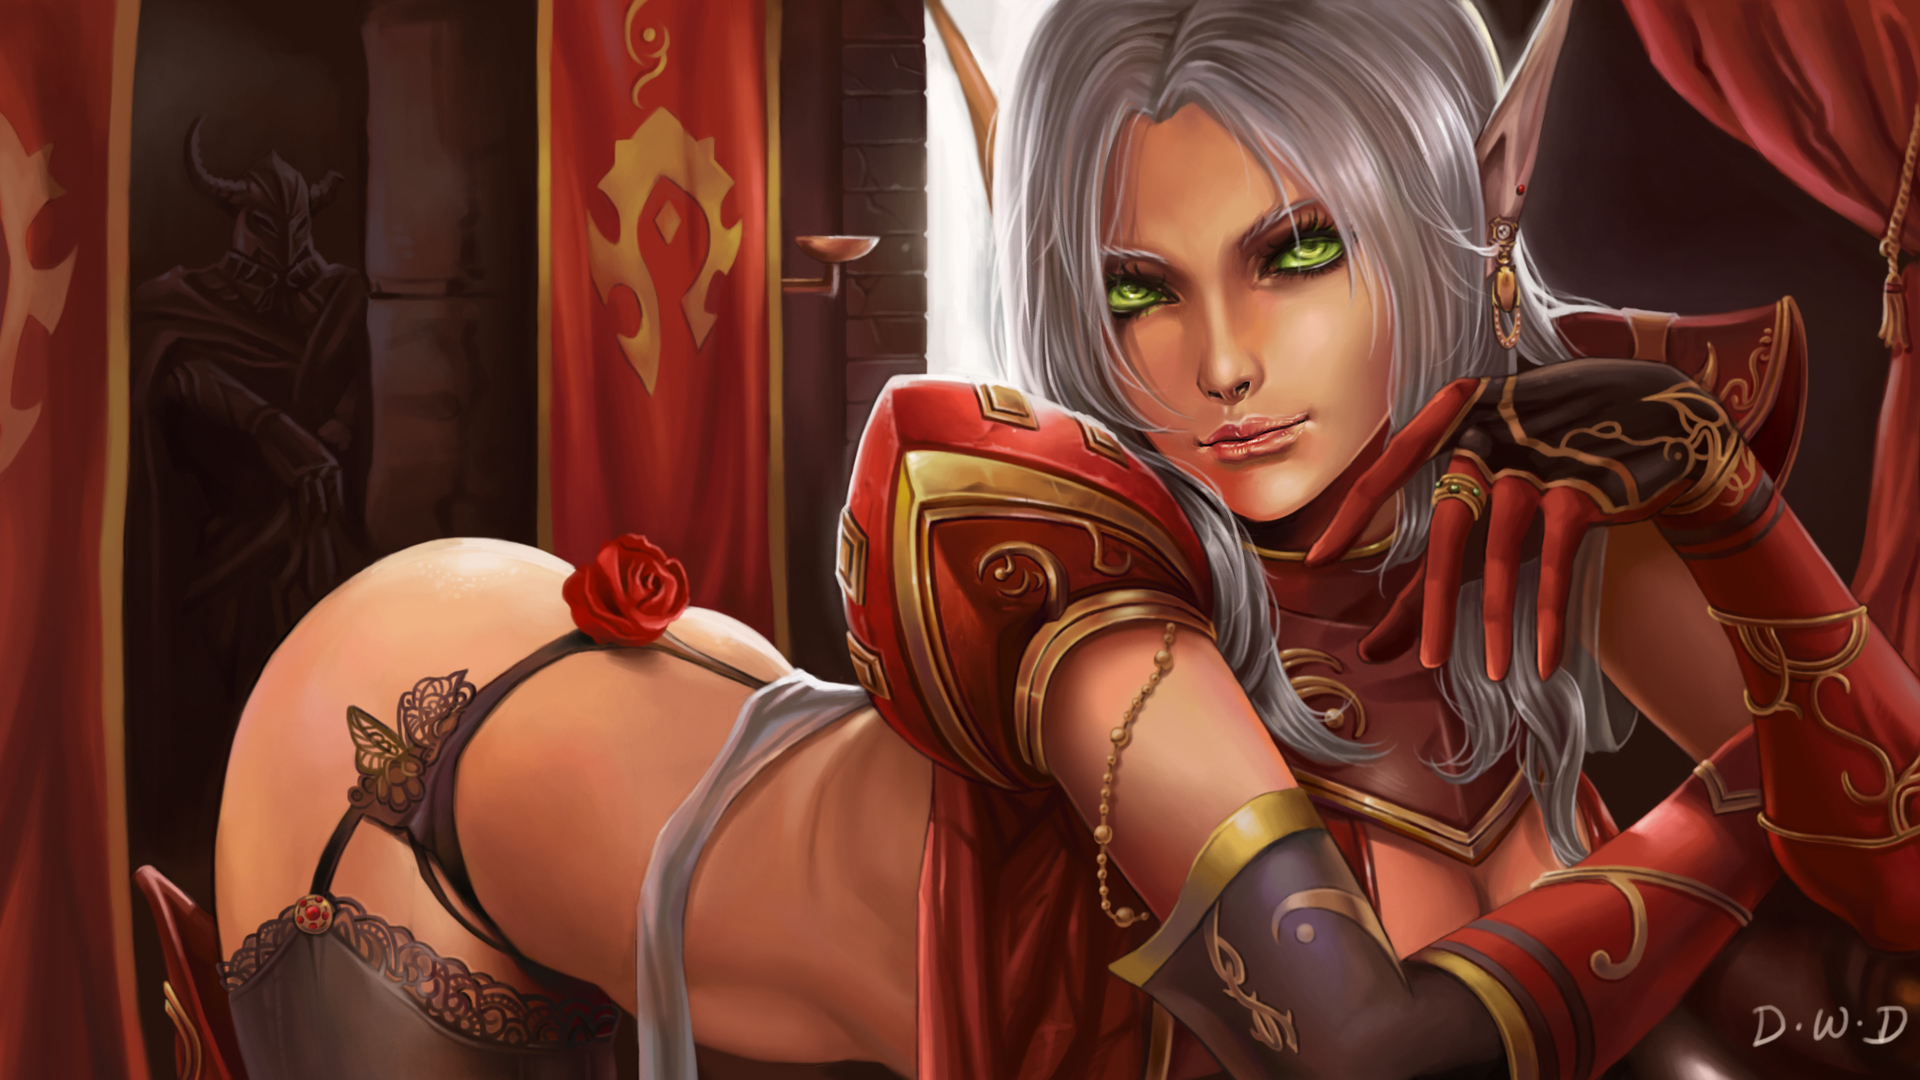 World of warcraft naked blood elf sex photo